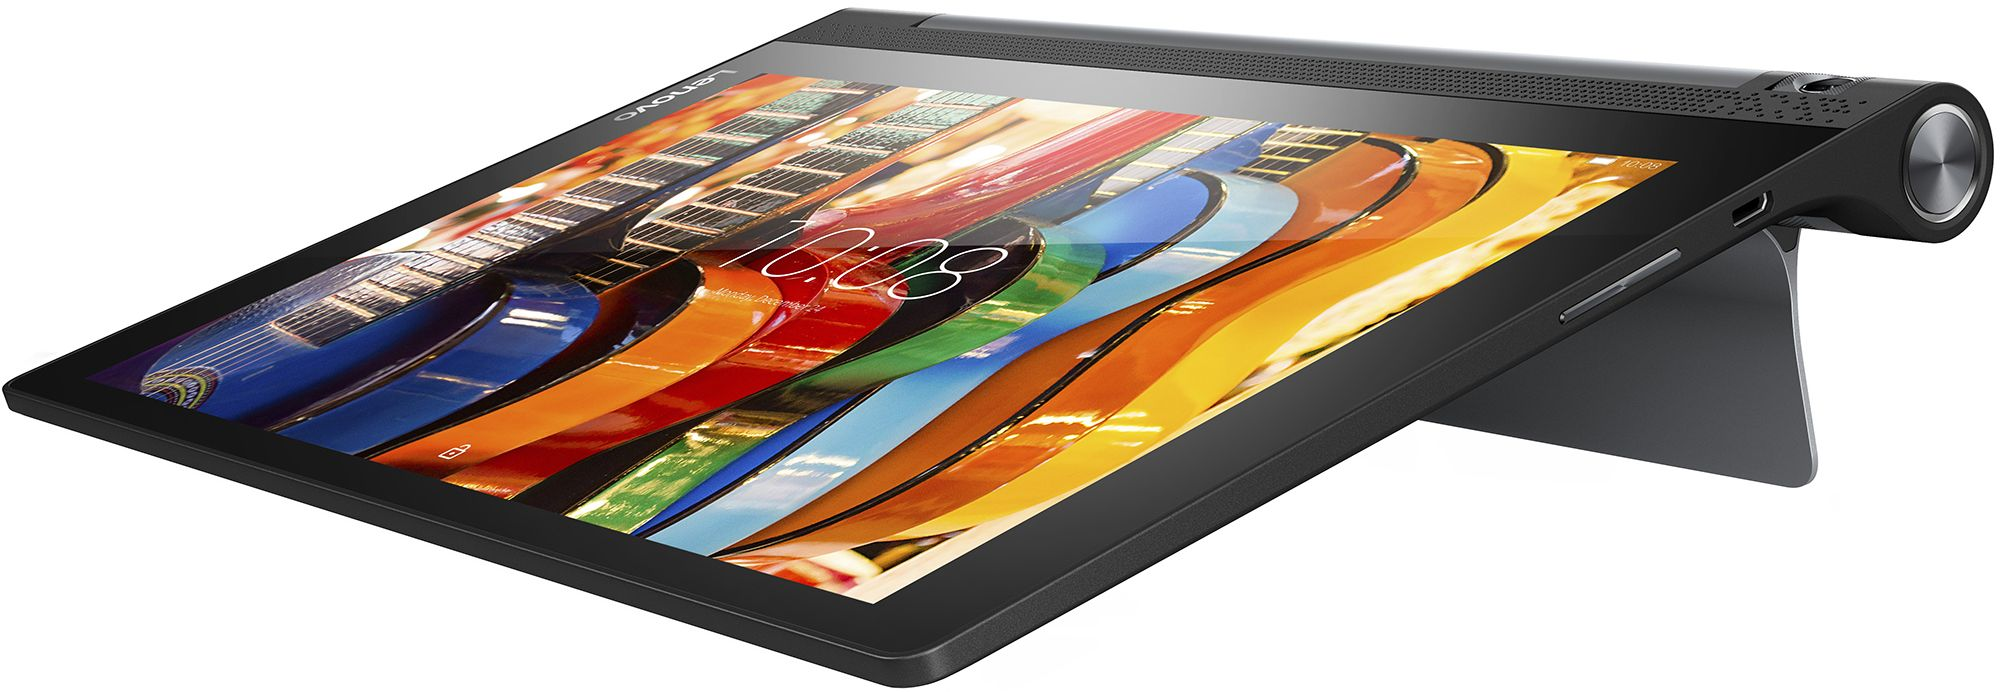 "Lenovo Yoga Tablet 3 10.1"" 16Gb LTE (YT3-X50M)"